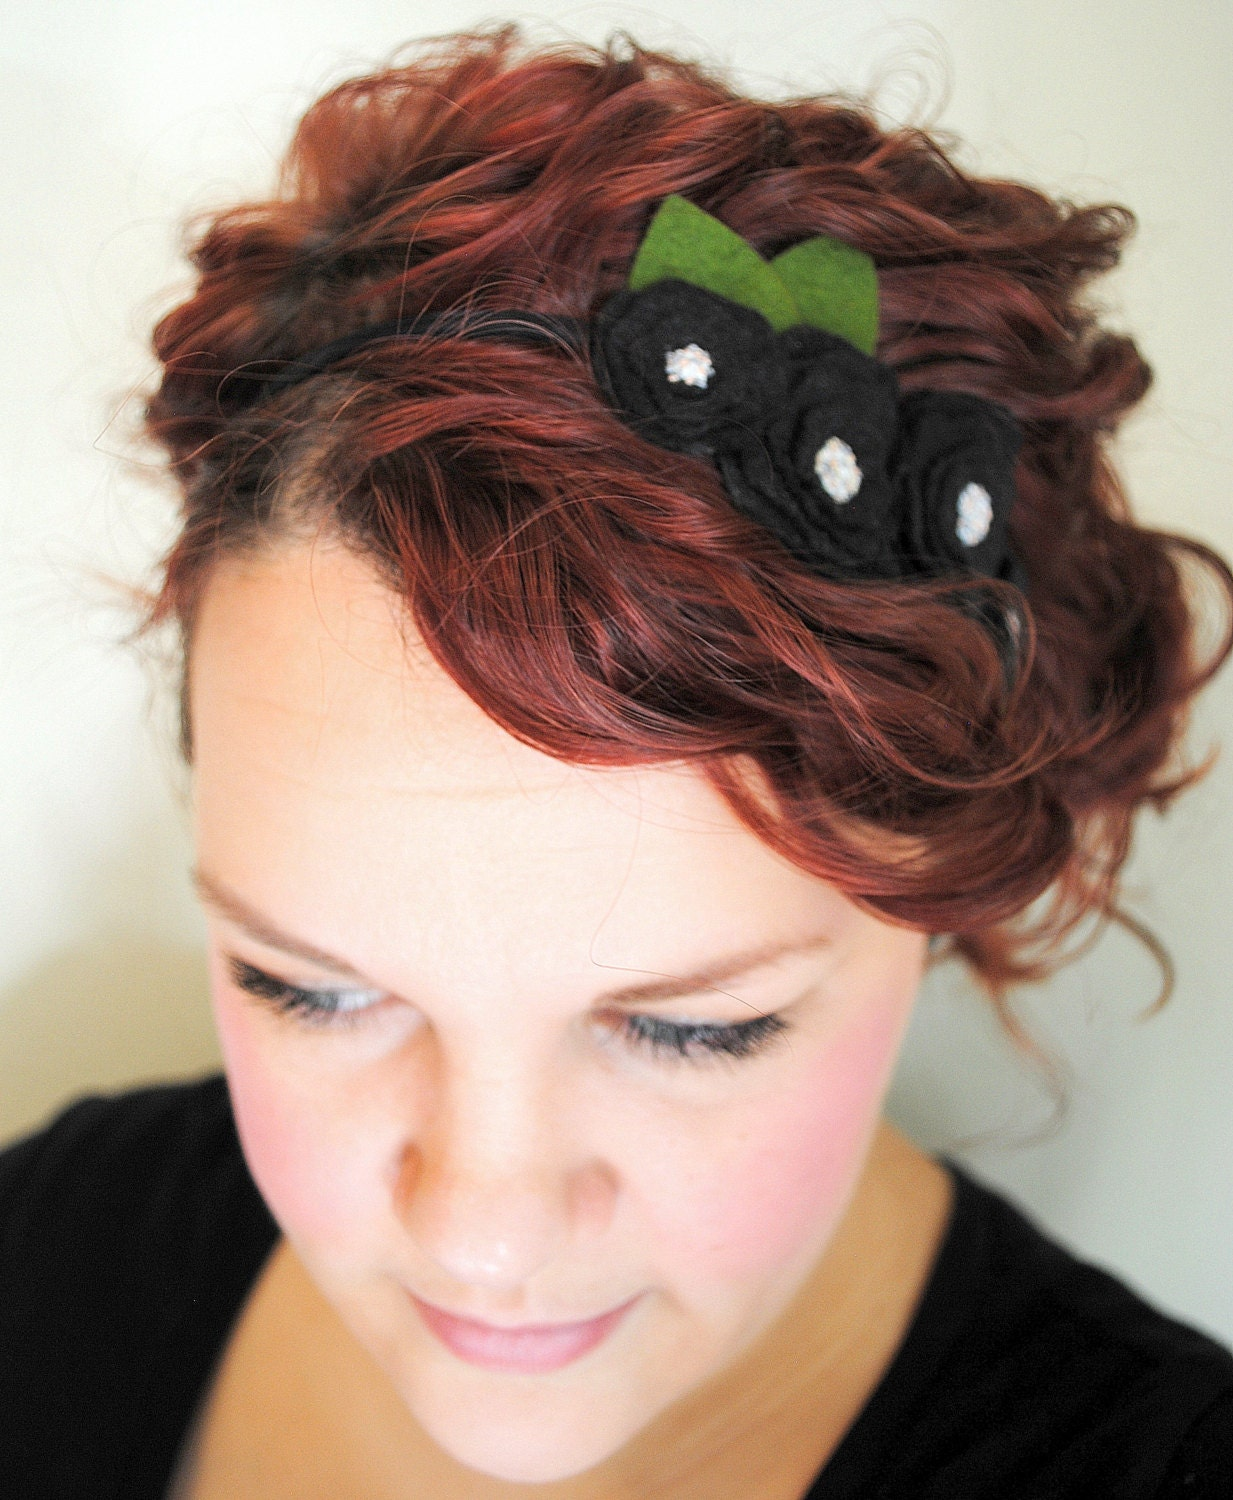 Black Flower Headband - Wool Felt Flower - Peony Headband - Statement Hair Accessory - FoldingChairDesigns